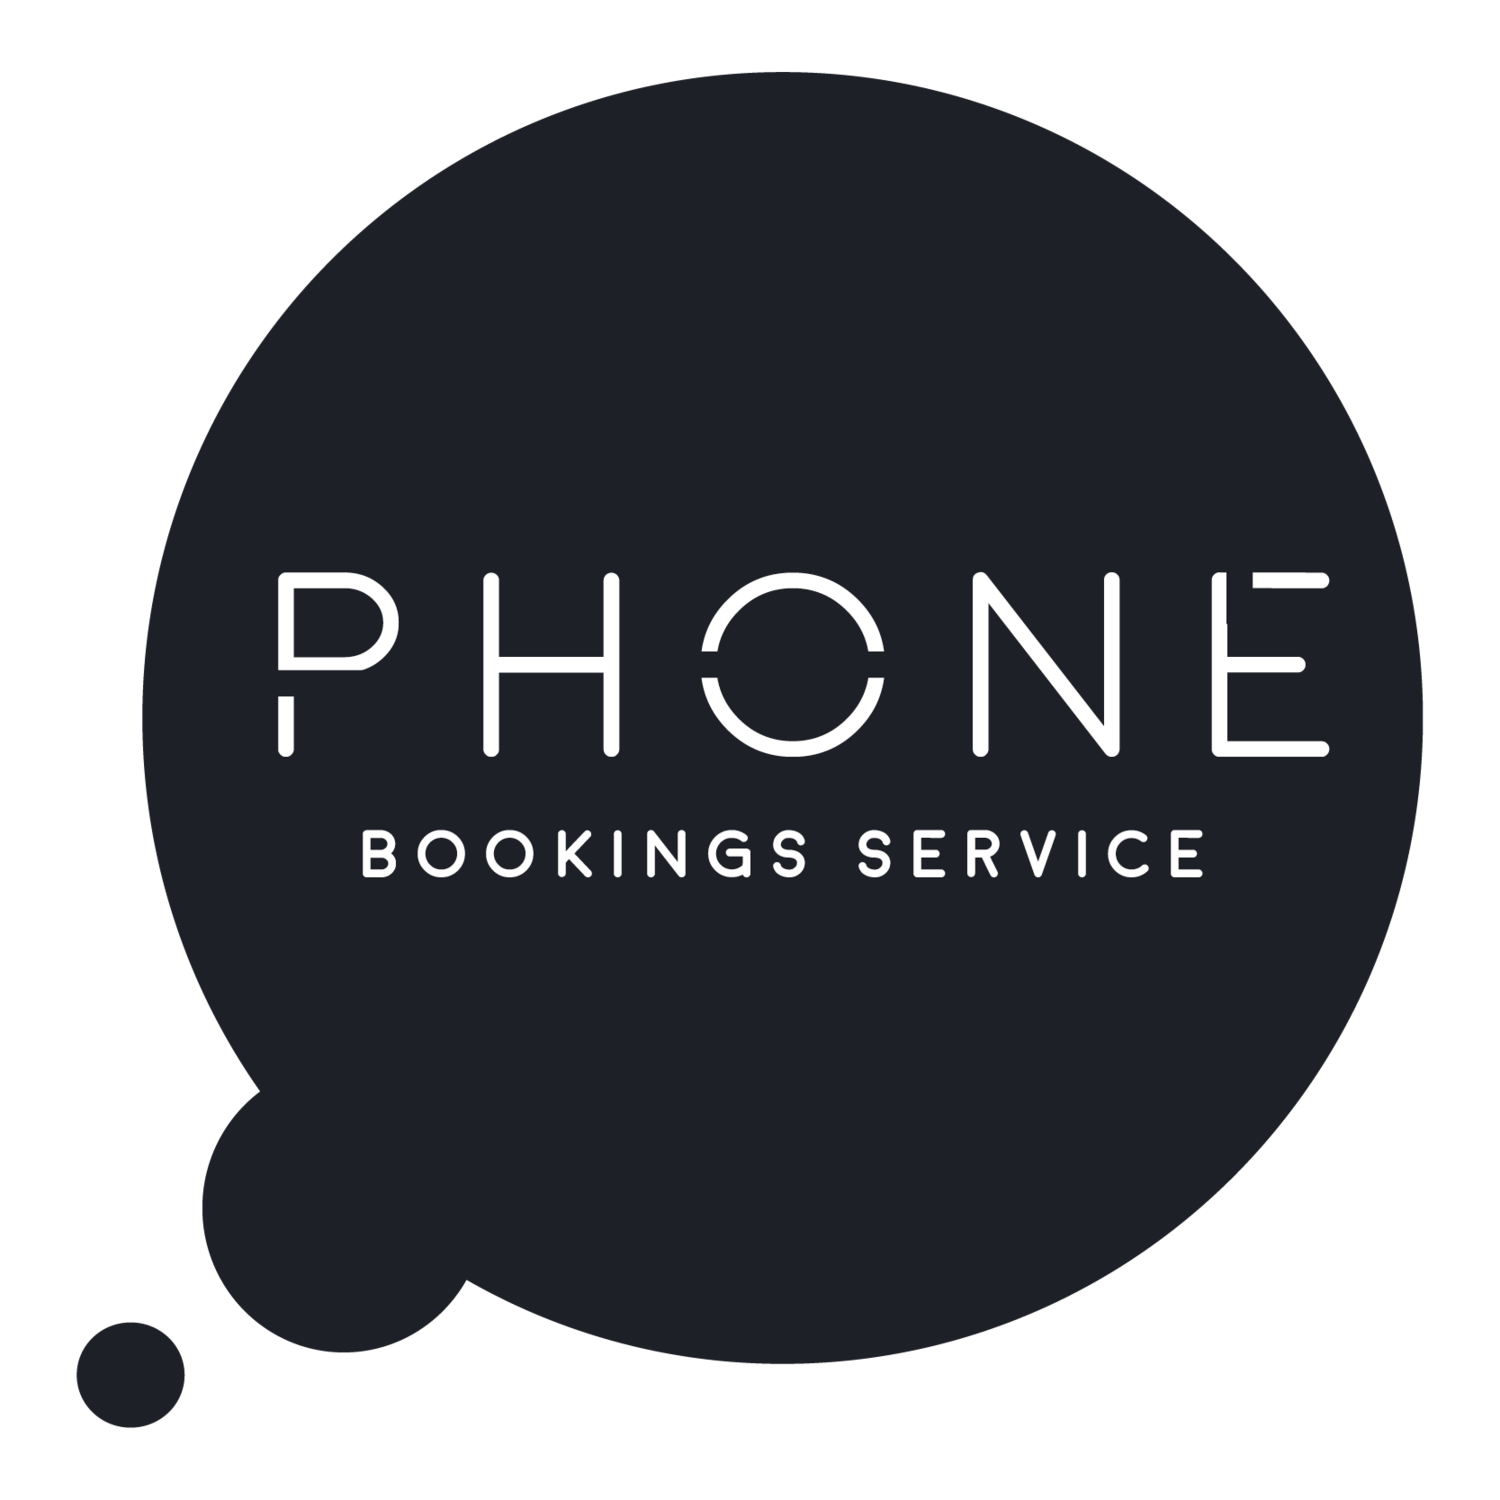 Phone Bookings Service